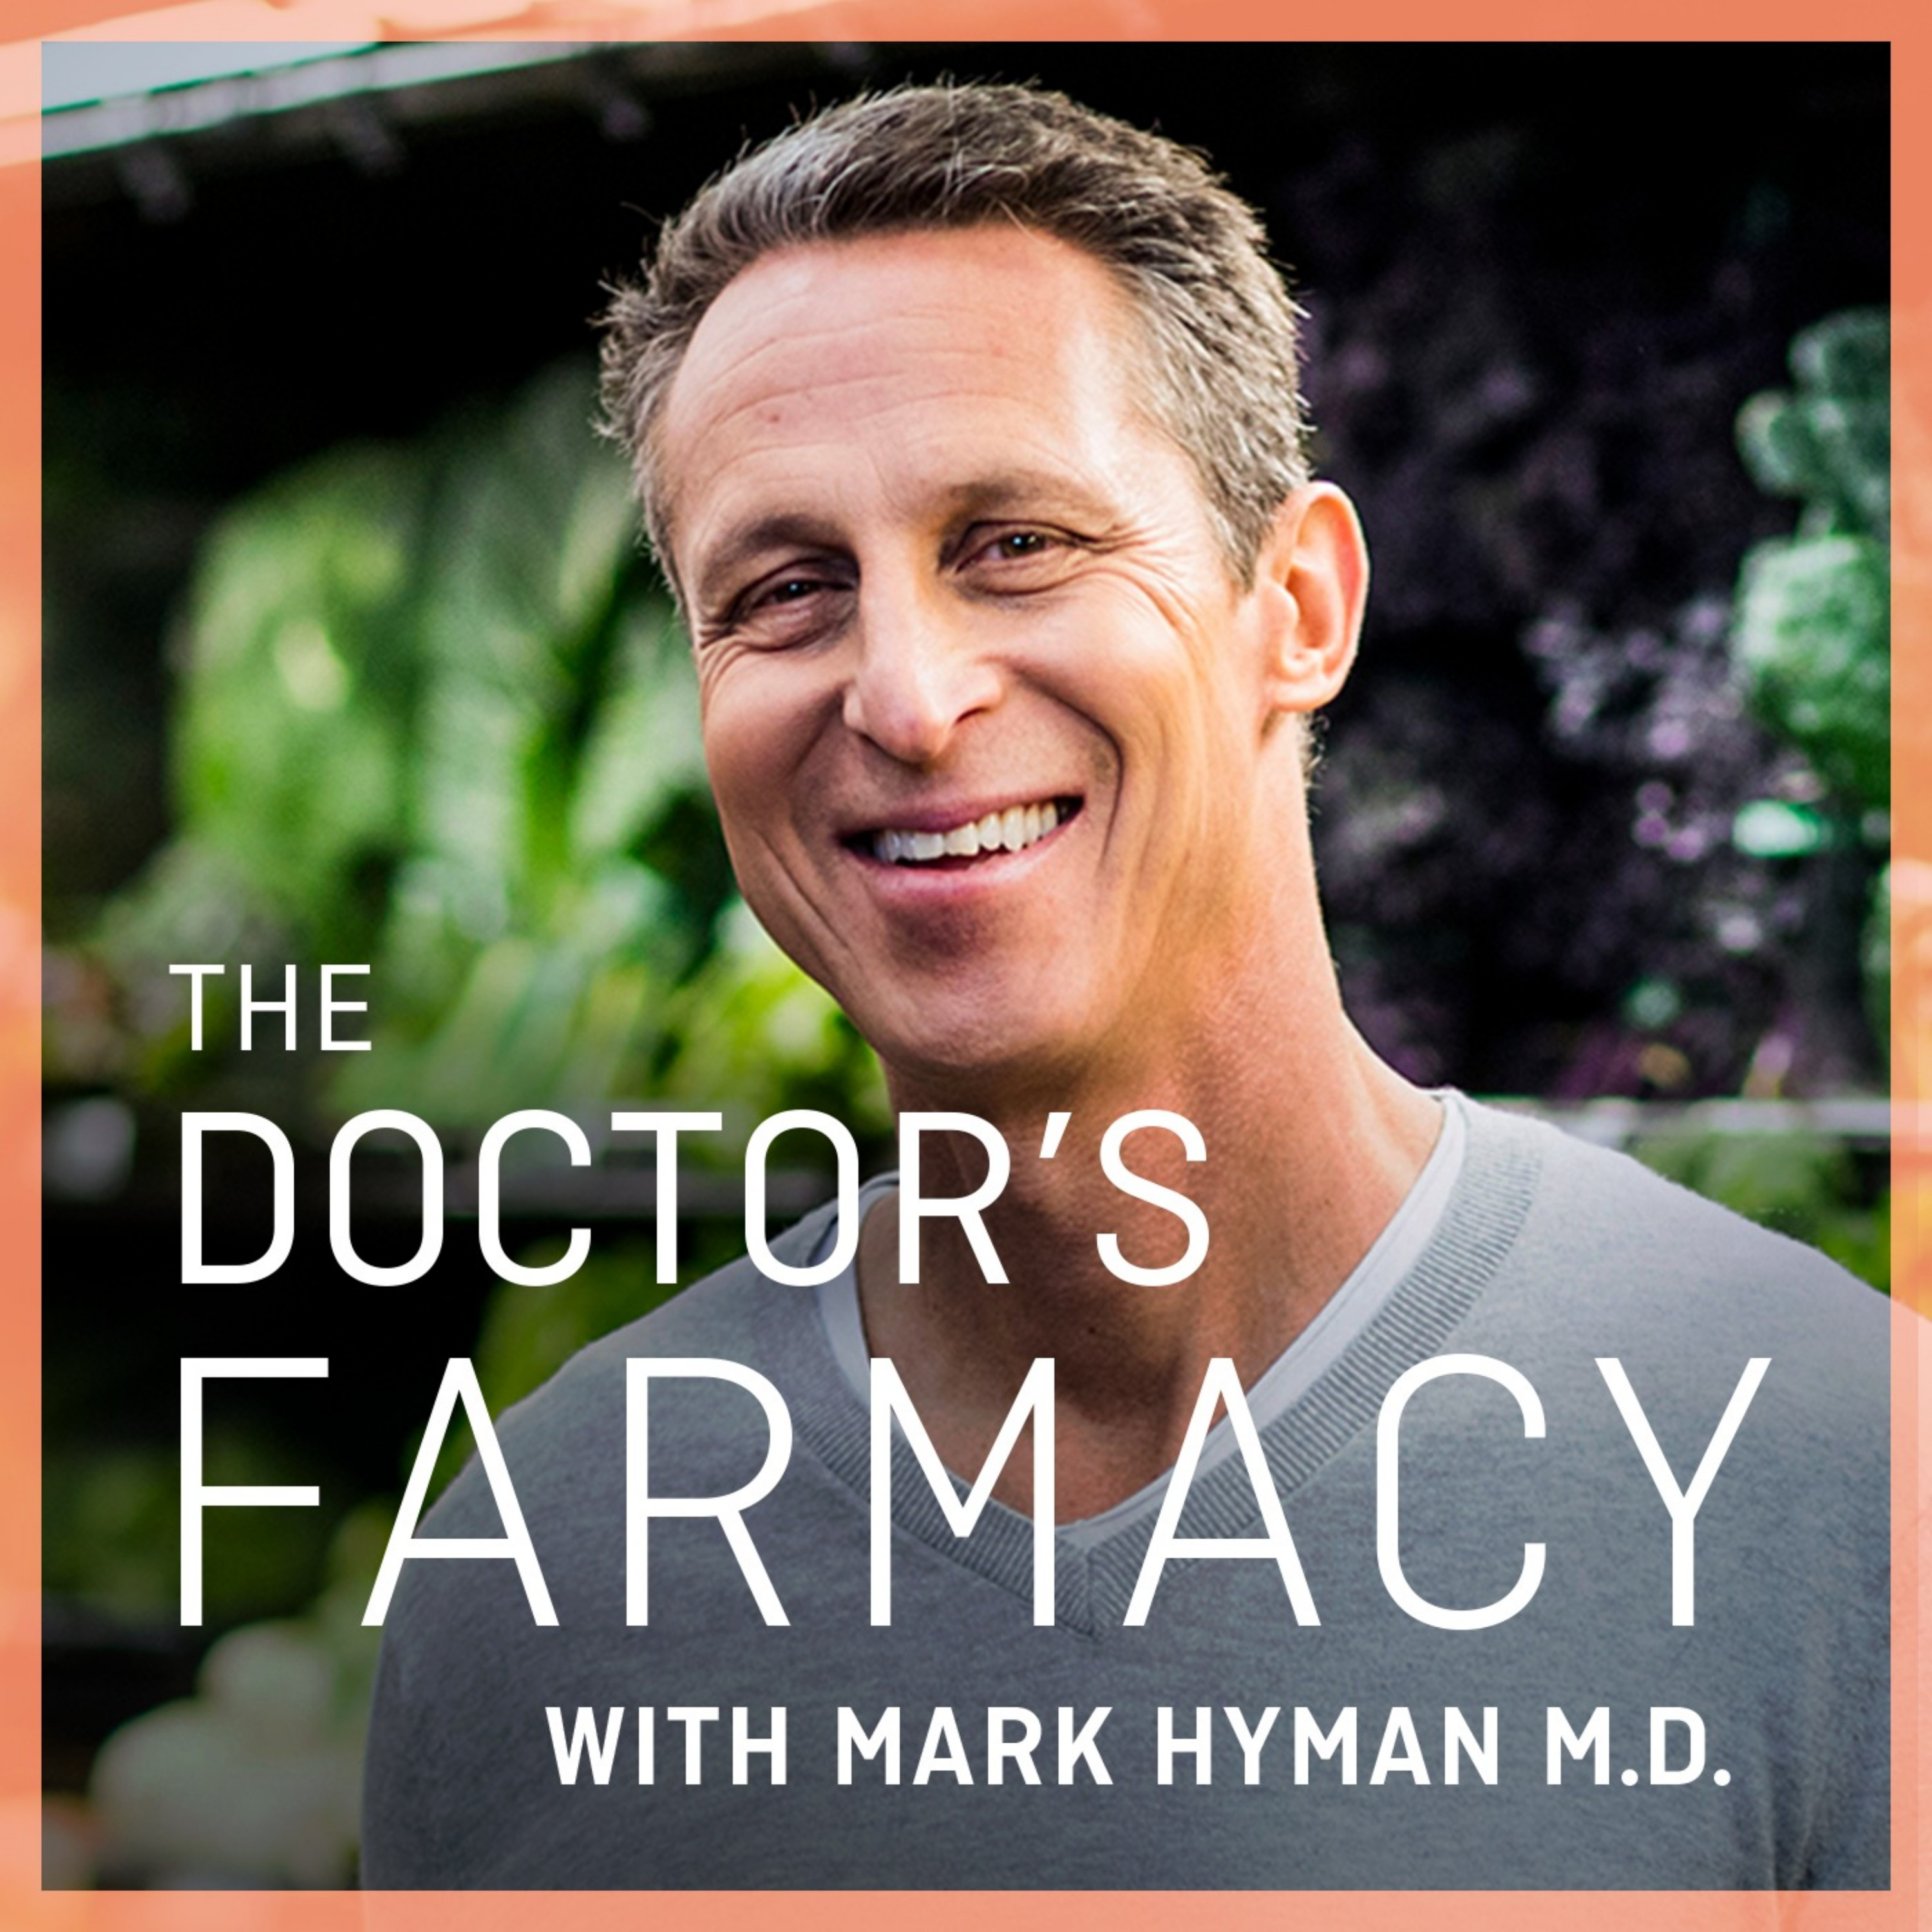 How To Eat Smarter With Shawn Stevenson The Doctor S Farmacy With Mark Hyman M D Acast